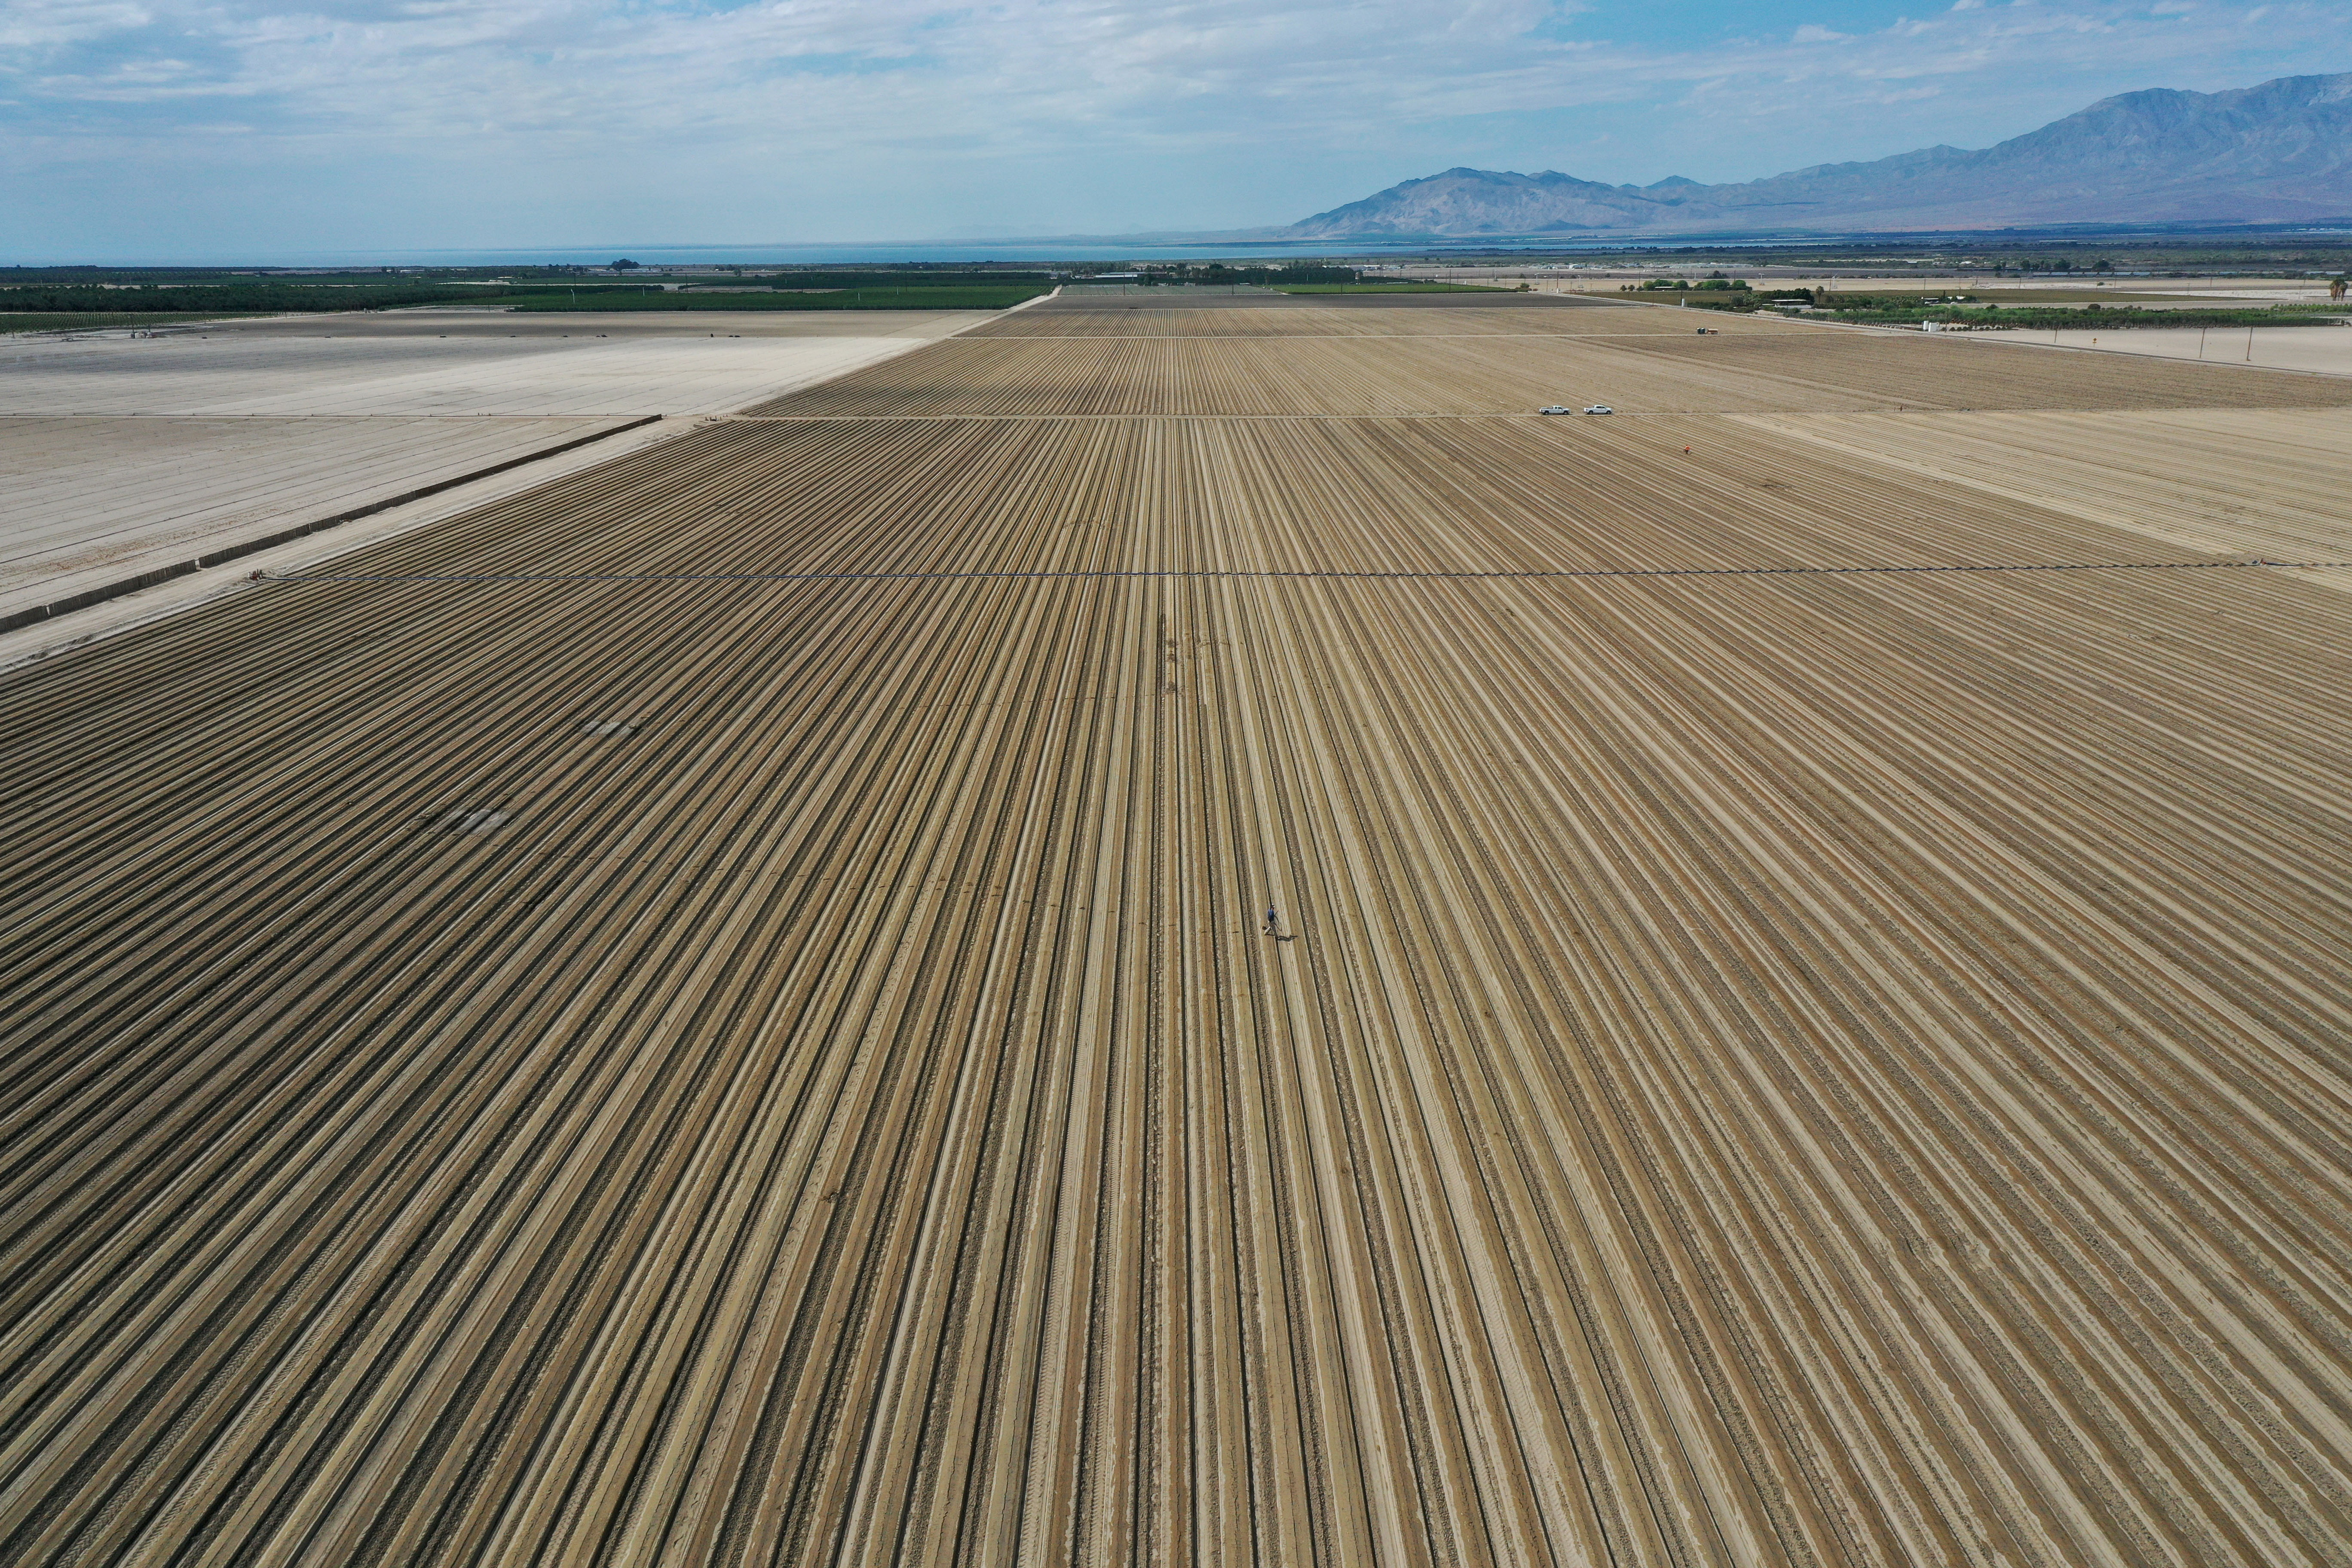 An aerial view shows agricultural fields as California faces its worst drought since 1977, in Mecca, California, U.S., July 4, 2021. REUTERS/Aude Guerrucci